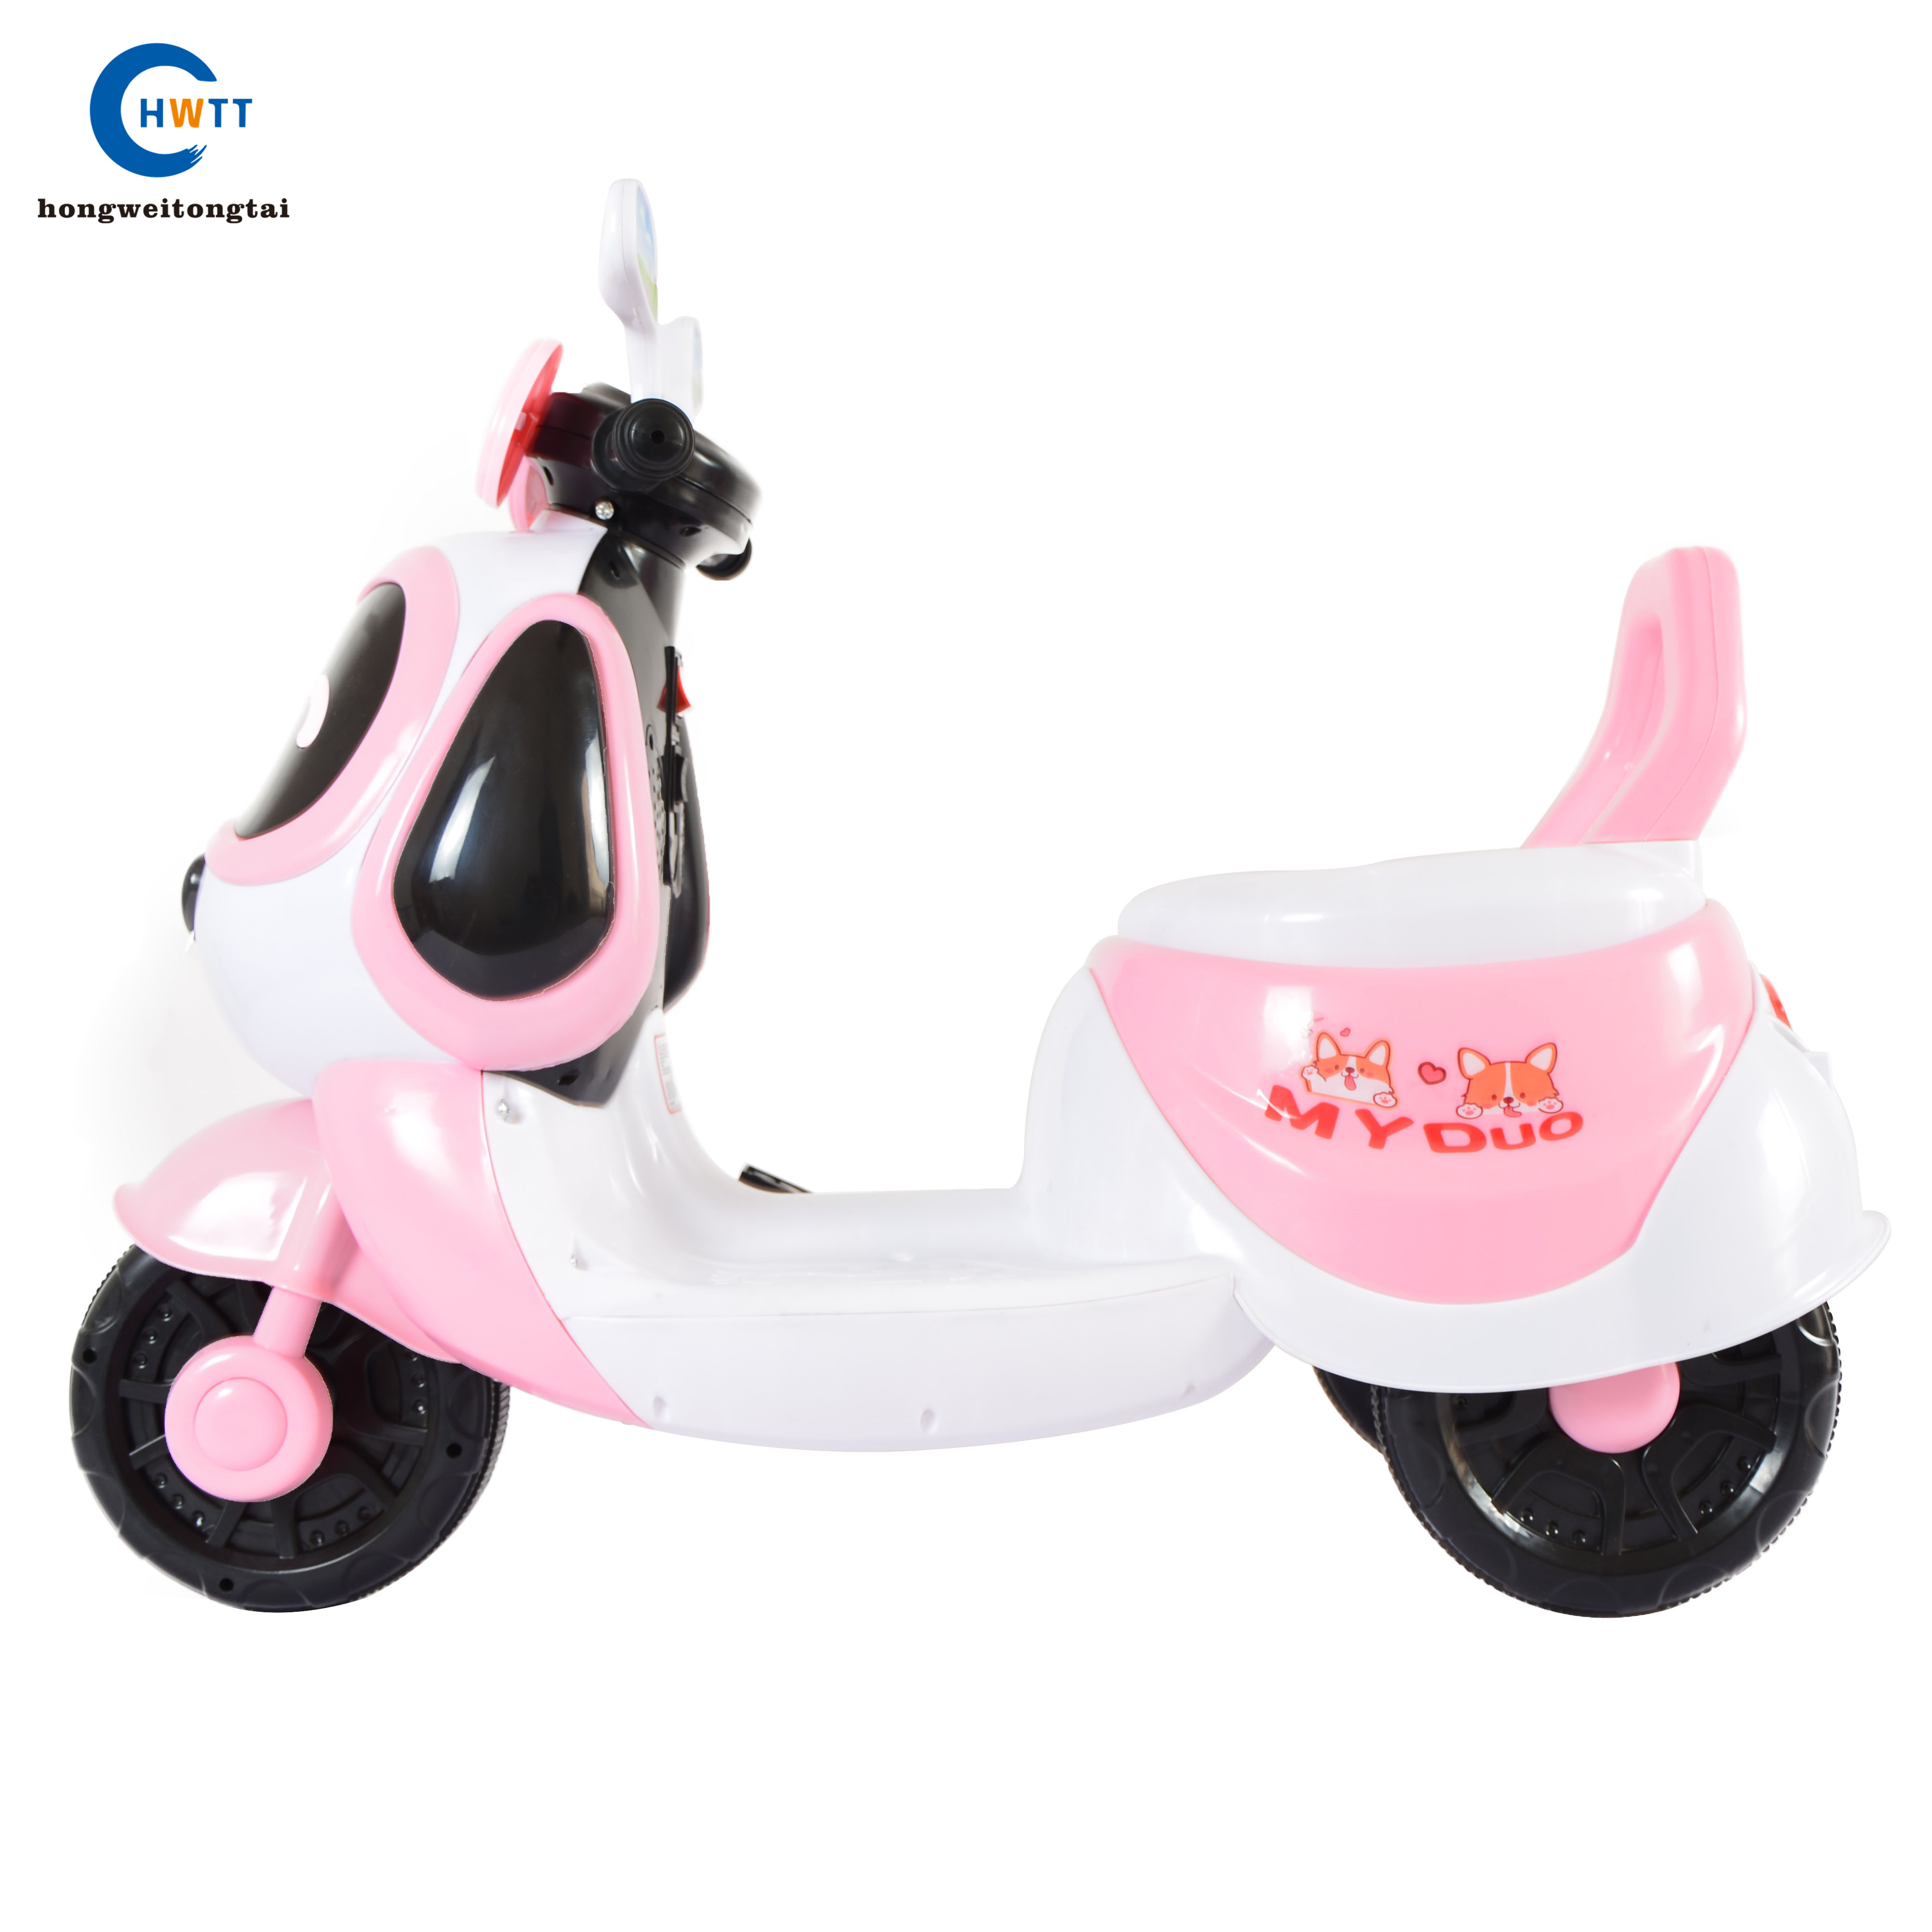 2019 new baby car kids rechargeable motorcycle <strong>electric</strong> mini motorcycle for sale cheap